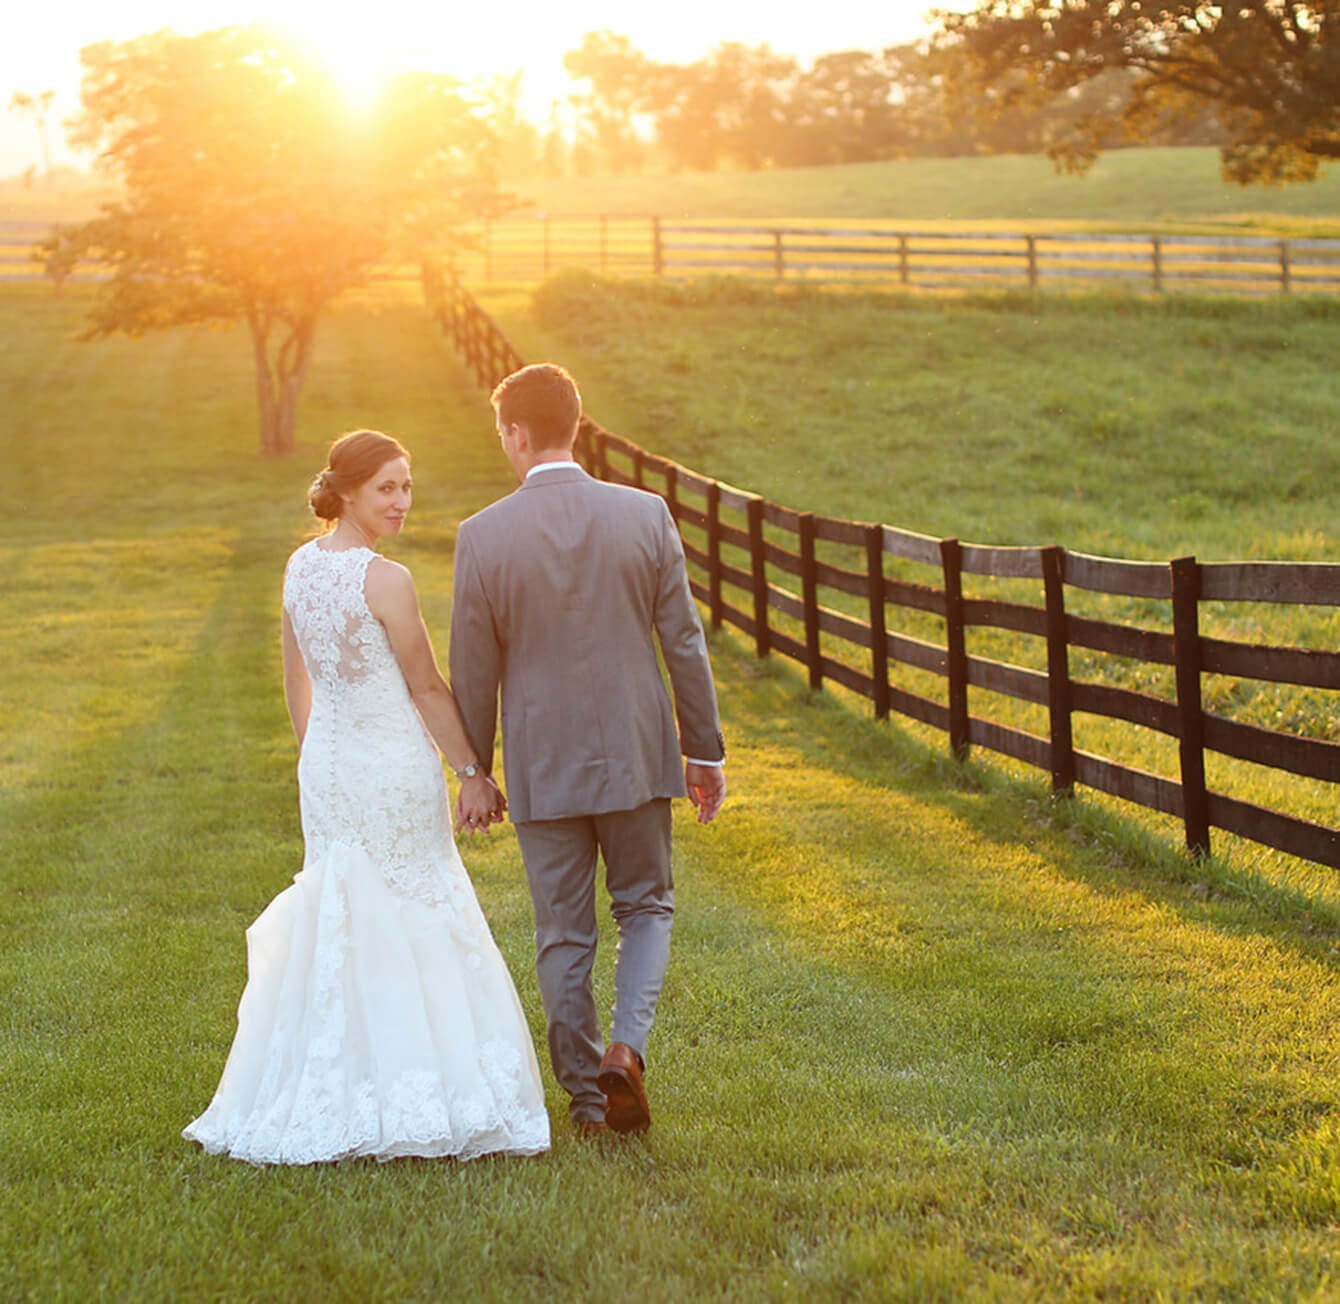 Bride and groom walking on green grass at sunset